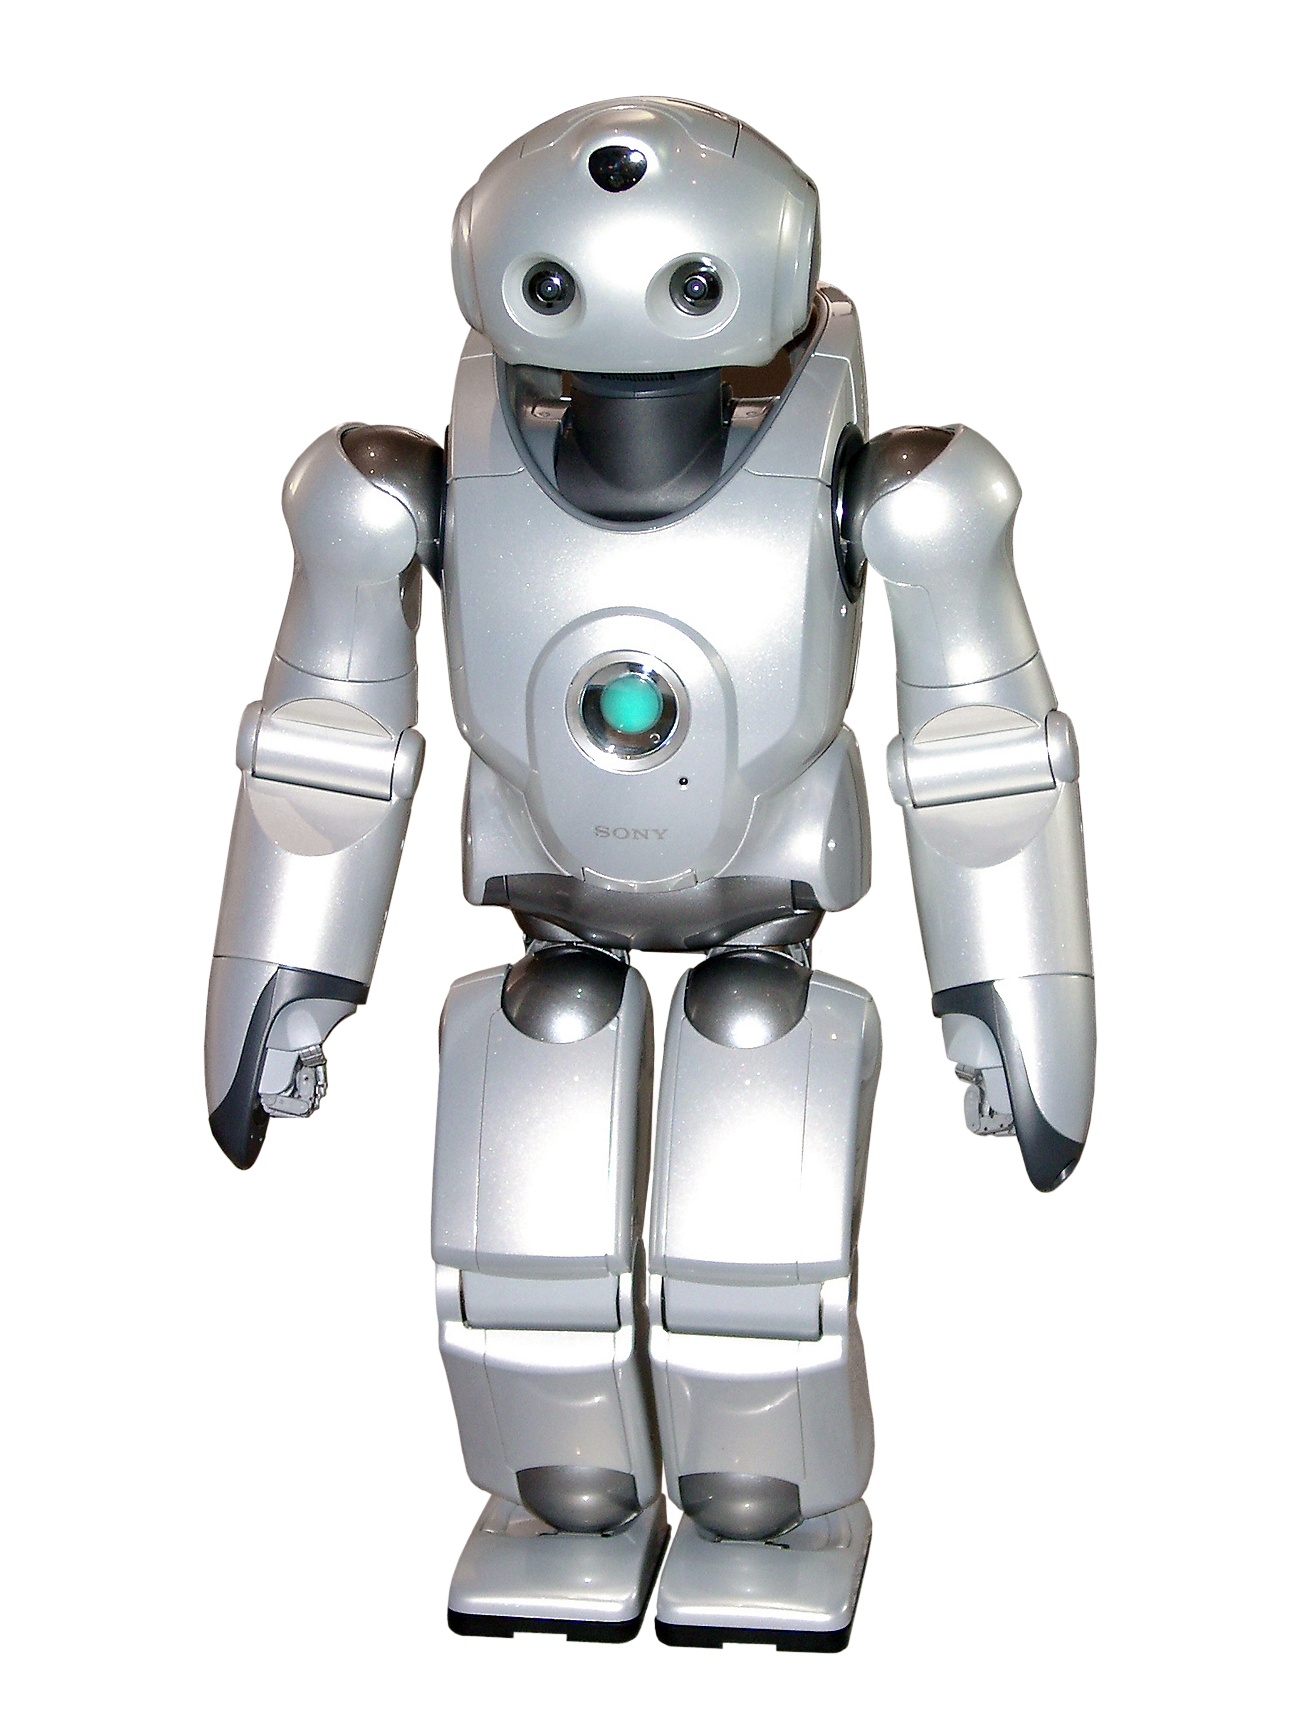 file sony qrio robot wikimedia commons #18828